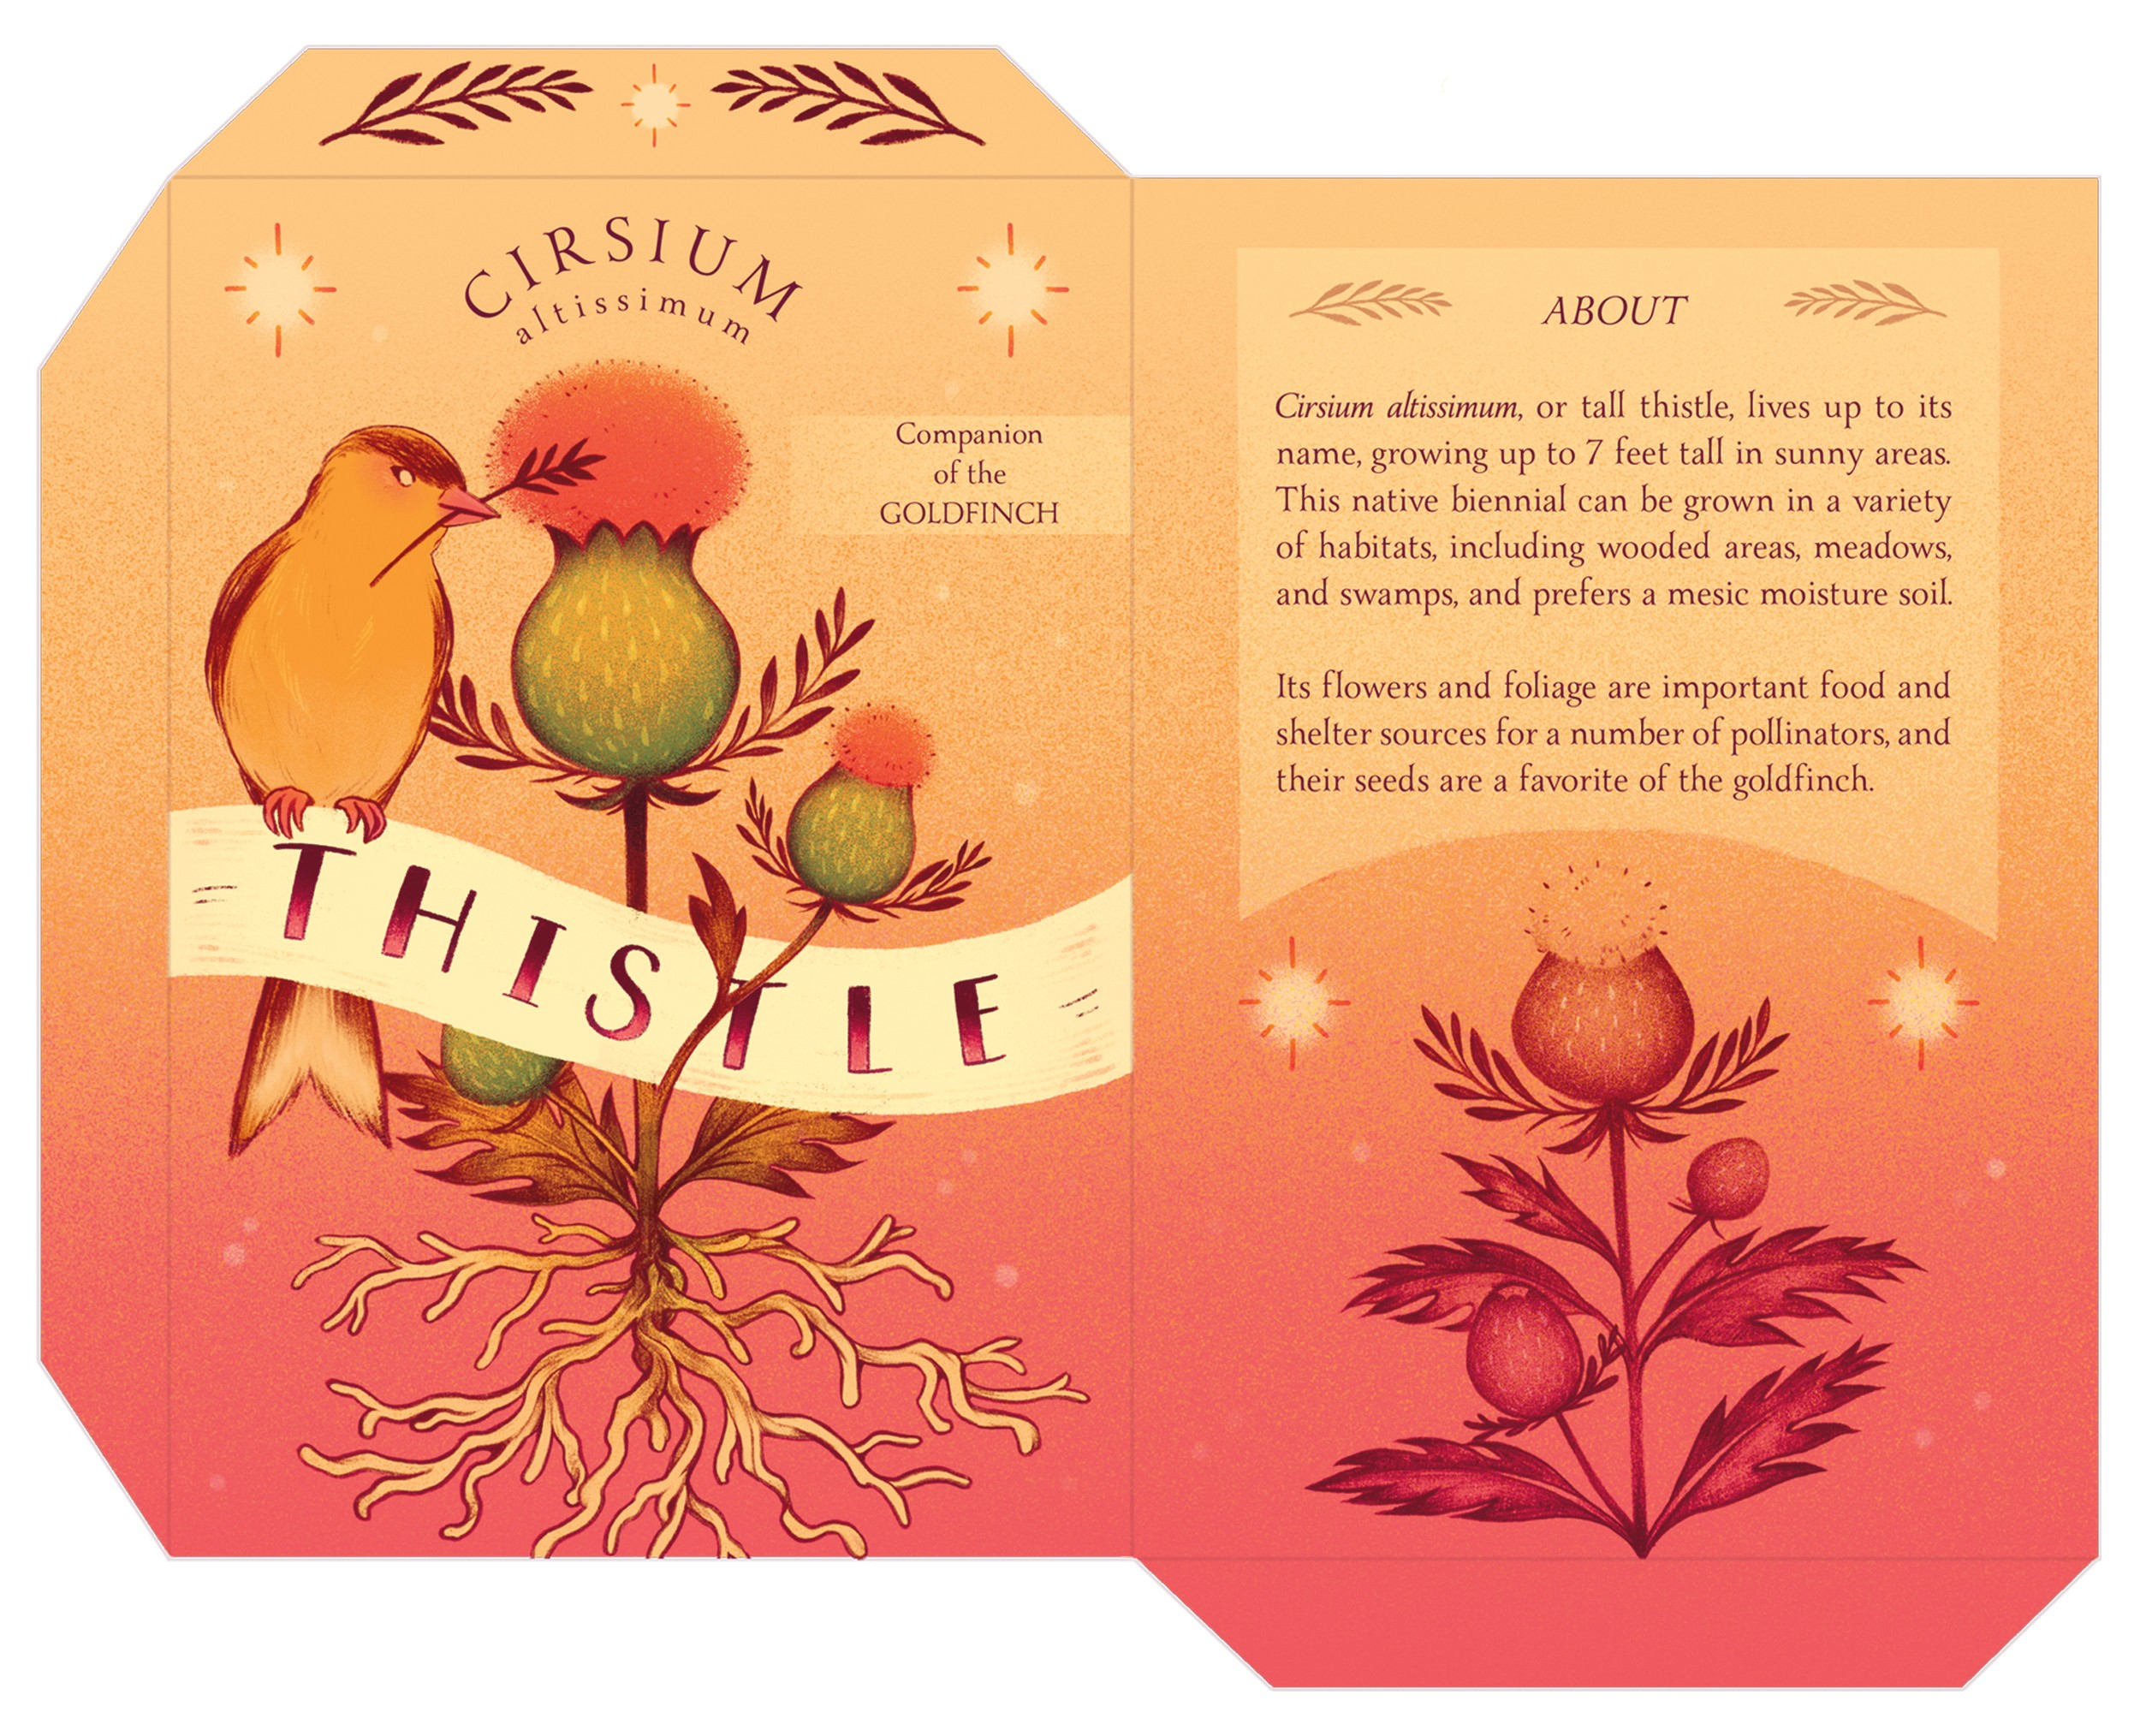 "A mock-up for a seed packet design featuring tall thistle and a goldfinch. The goldfinch is sitting upon the label that says ""Thistle"" with the plant situated behind it."